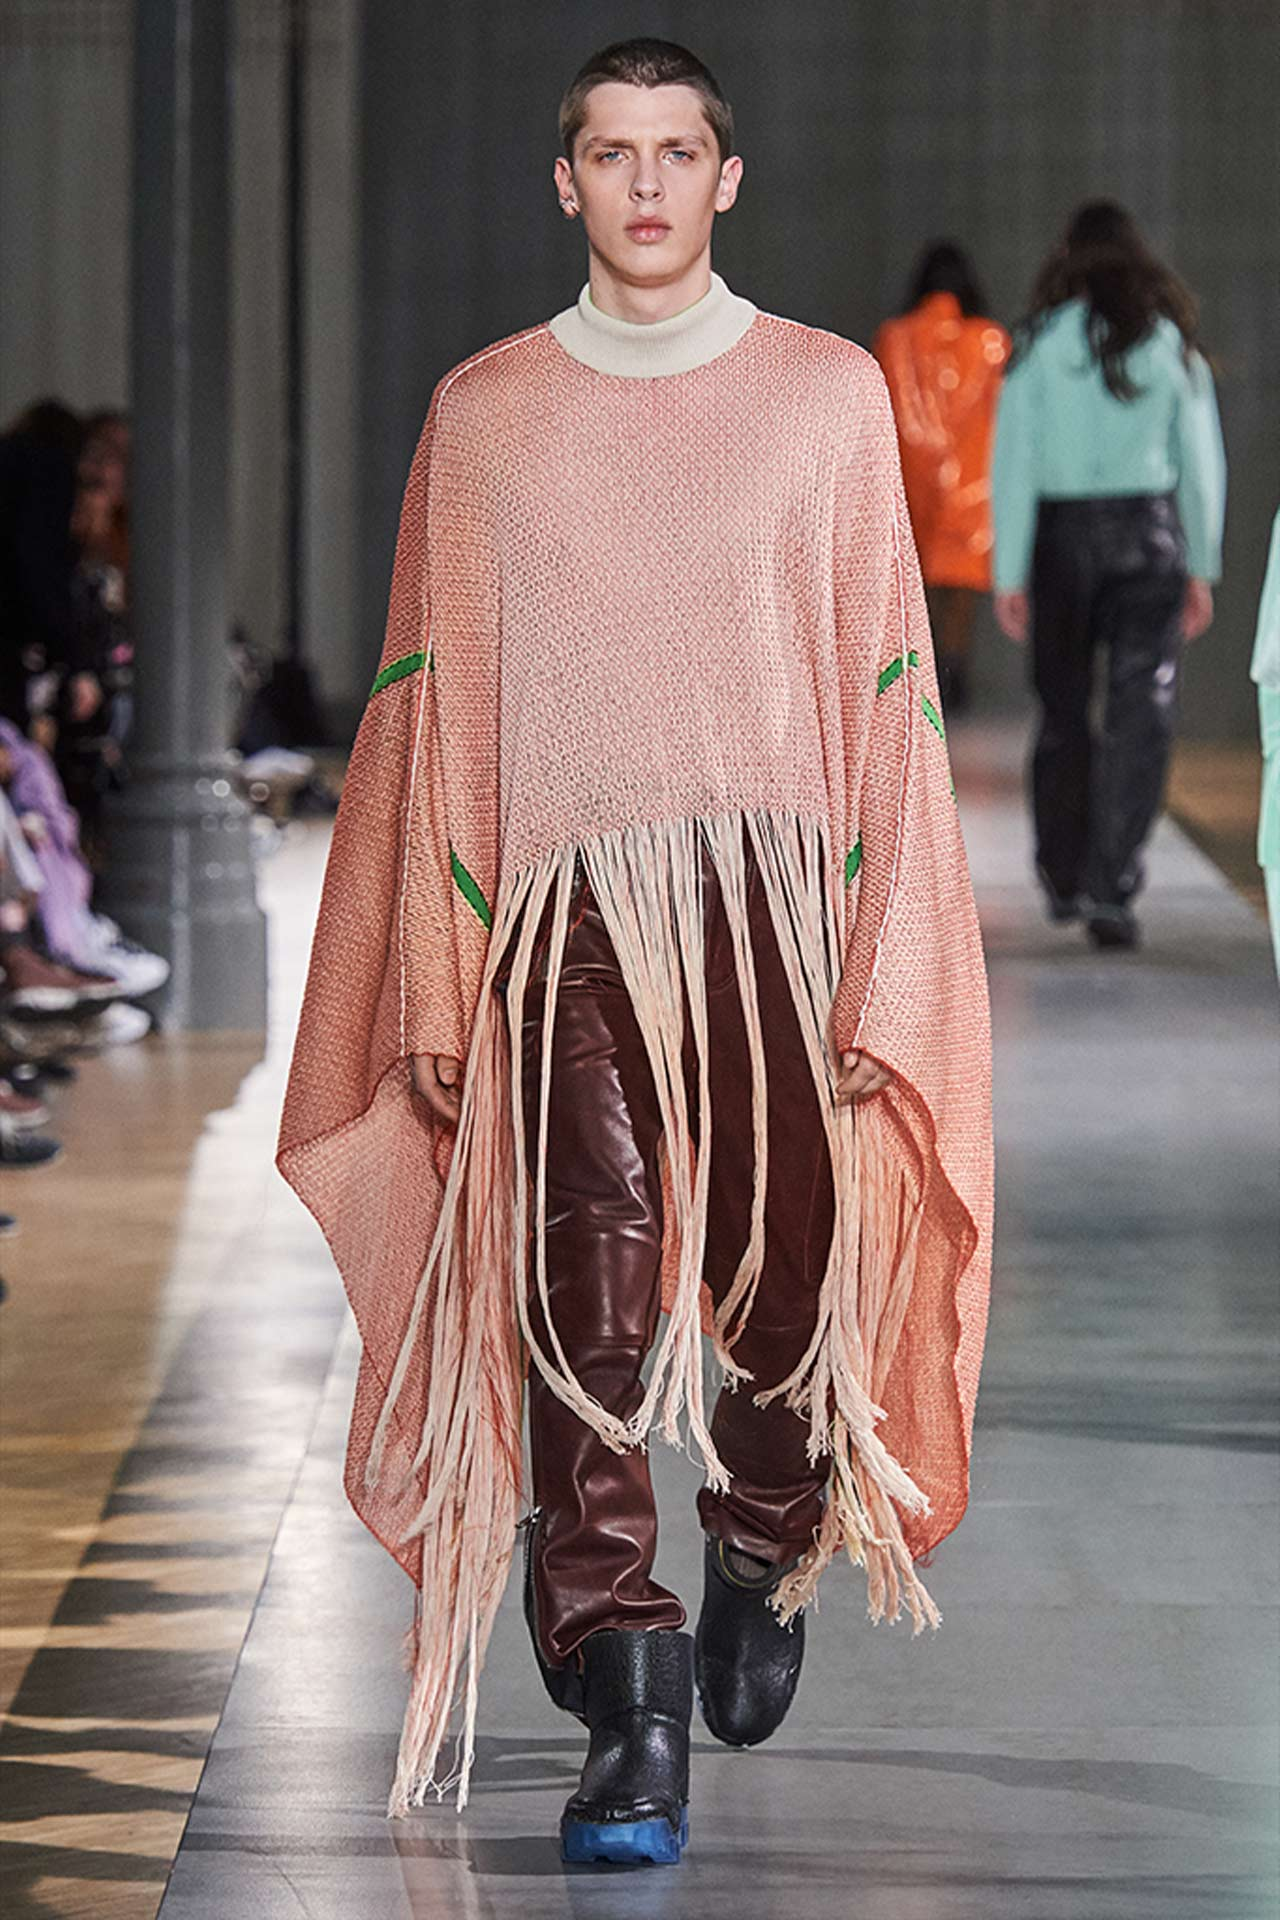 Look Fall/Winter 2019, image 35